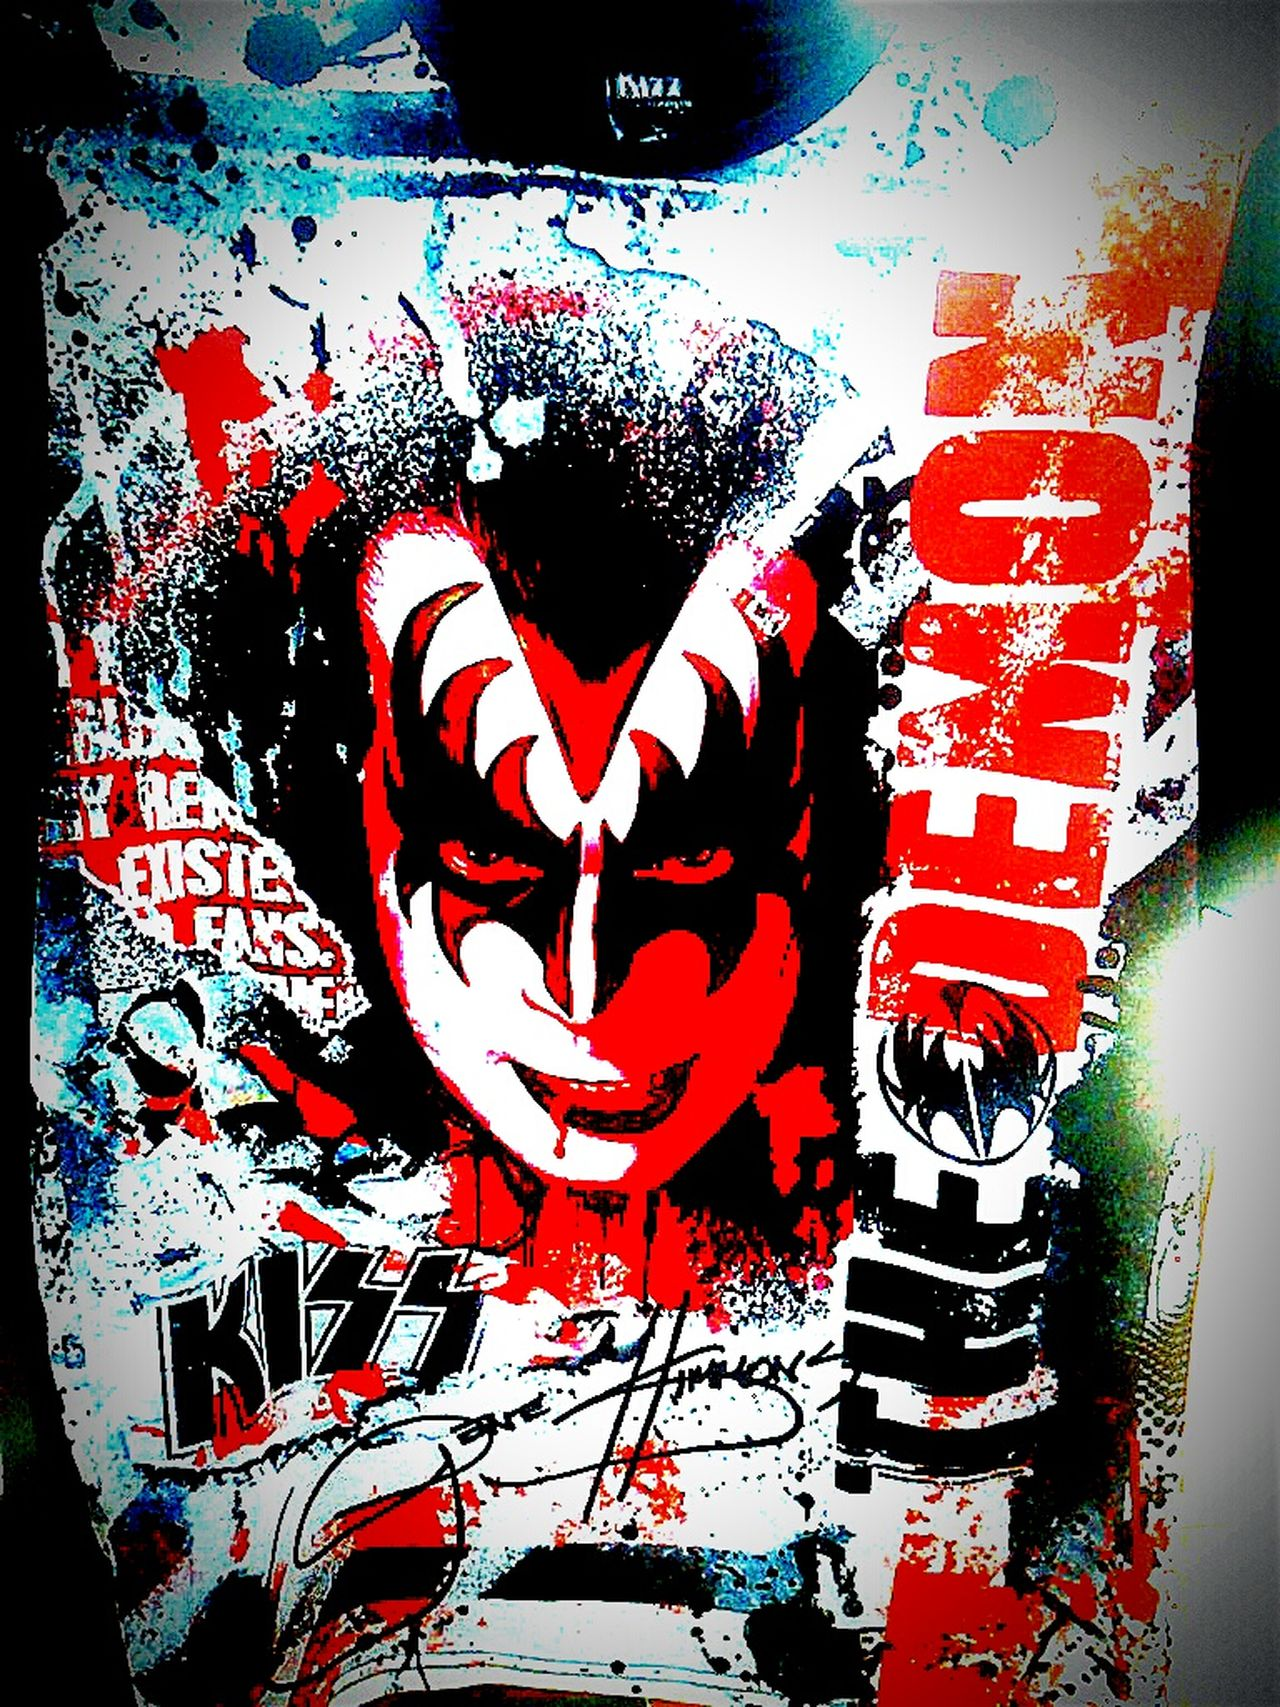 The Demon Kiss Gene Simmons Genesimmons Tshirts Tshirt T Shirts T Shirt Tee Shirt Bandshirt Tshirt♡ T Shirt Collection T Shirt Tees Tee Shirts Tshirtcollection Teeshirts T Shirt Tshirtporn Teeshirt Bandshirts T Shirt Art Gene Simmons Kiss :*